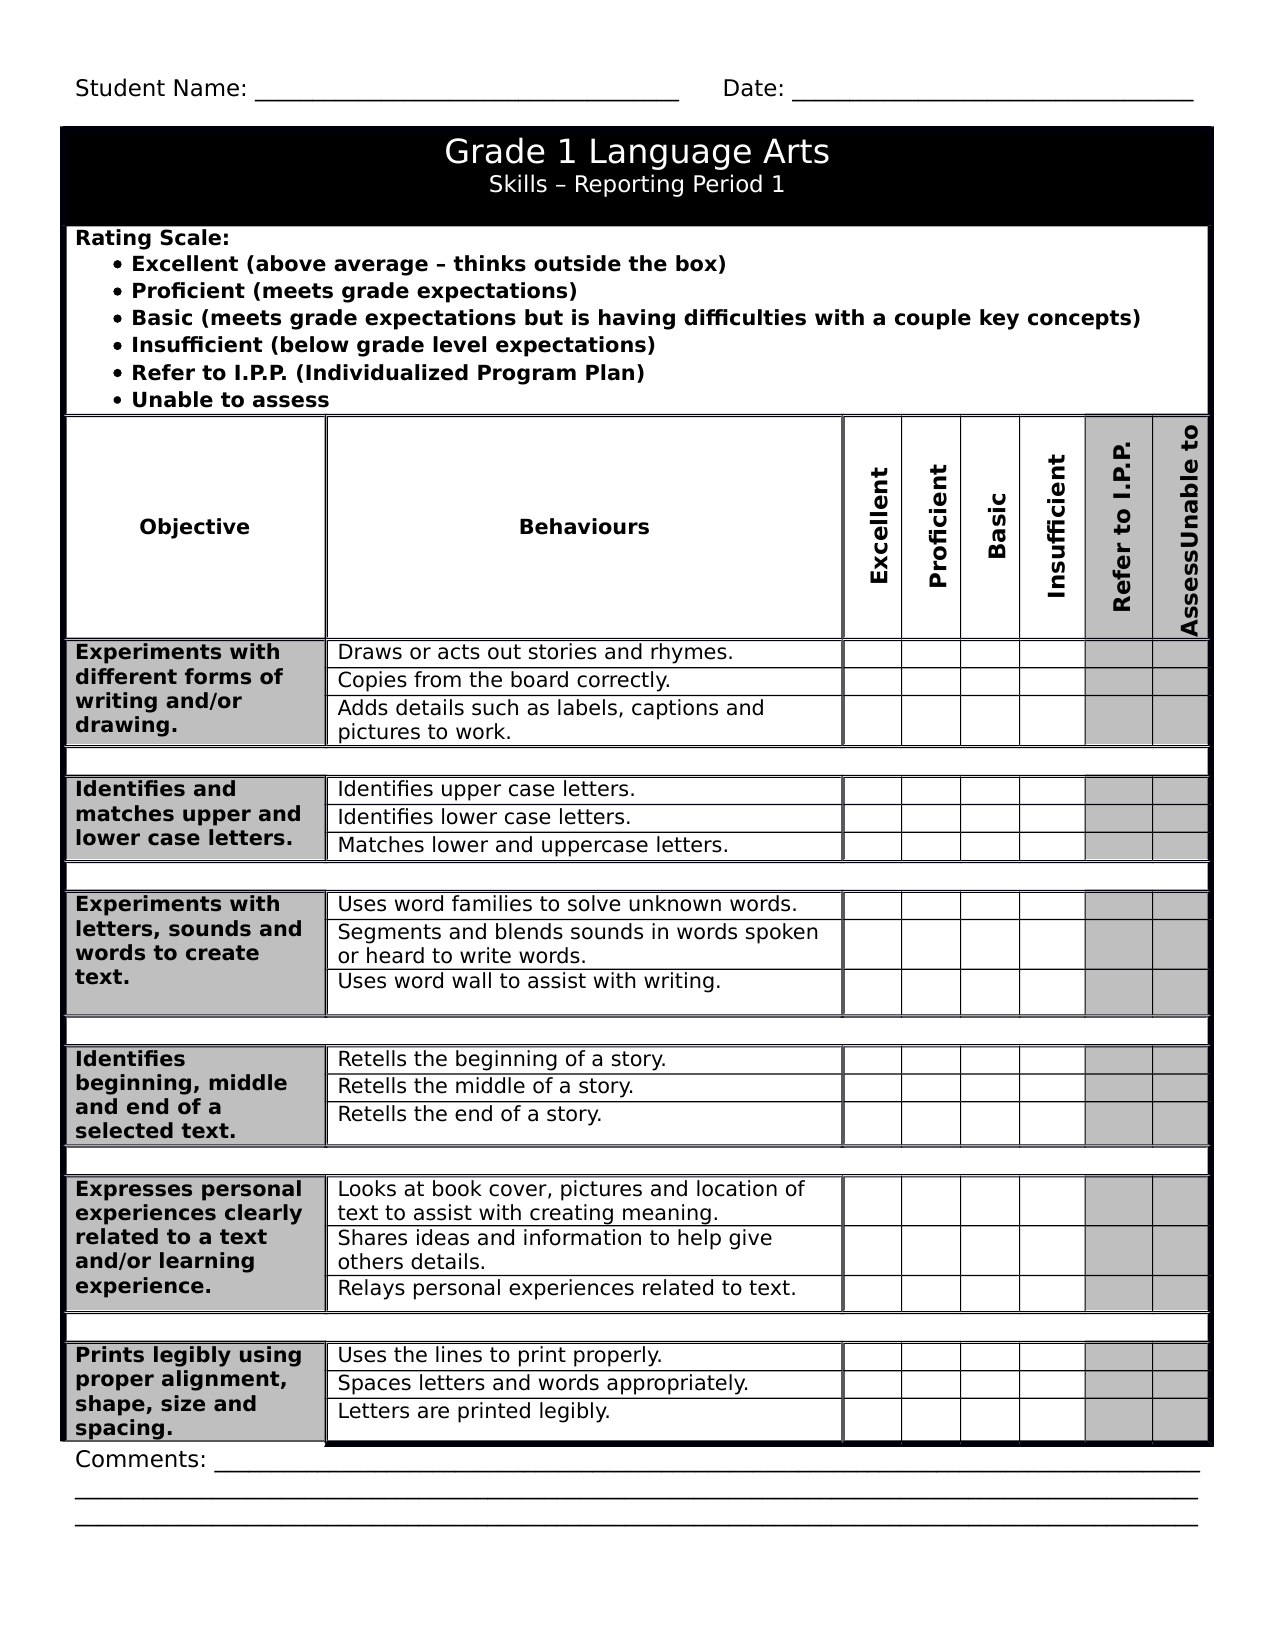 Gr 1 LA Checklist 1 Resource Preview